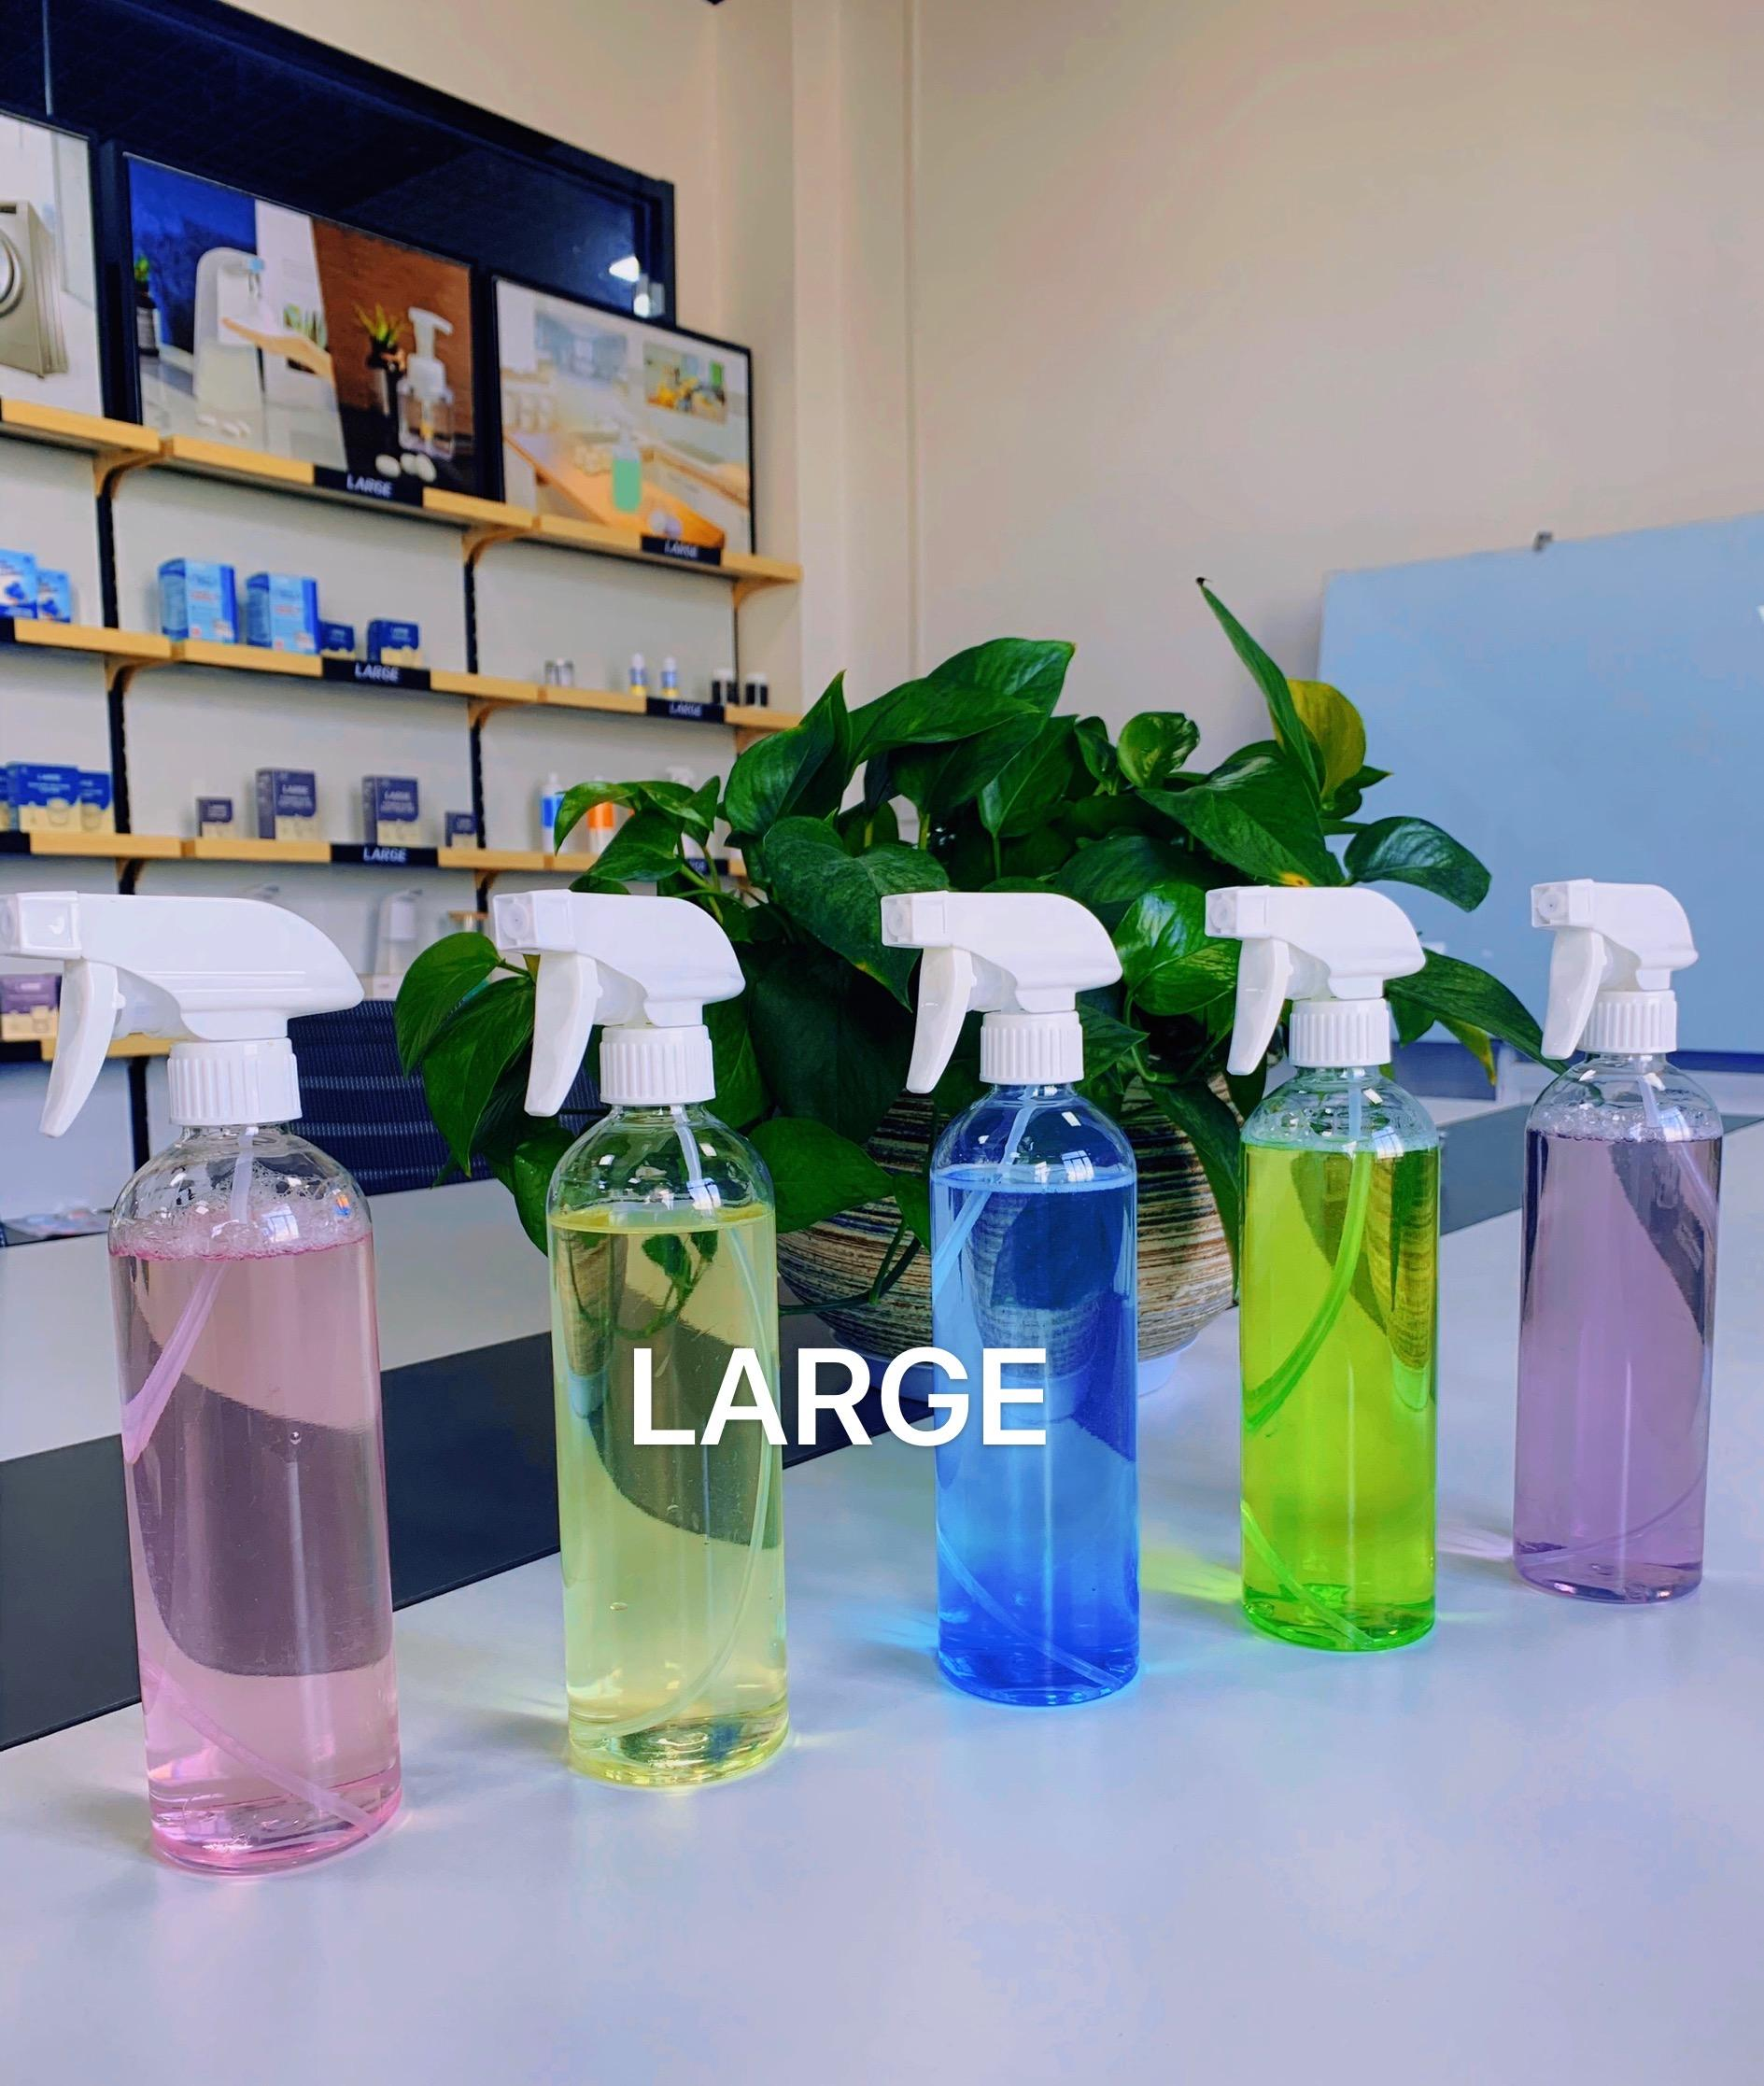 Strong manufacture of household cleaning detergent products such as Multi-purpose effervescent tablets kitchen cleaner